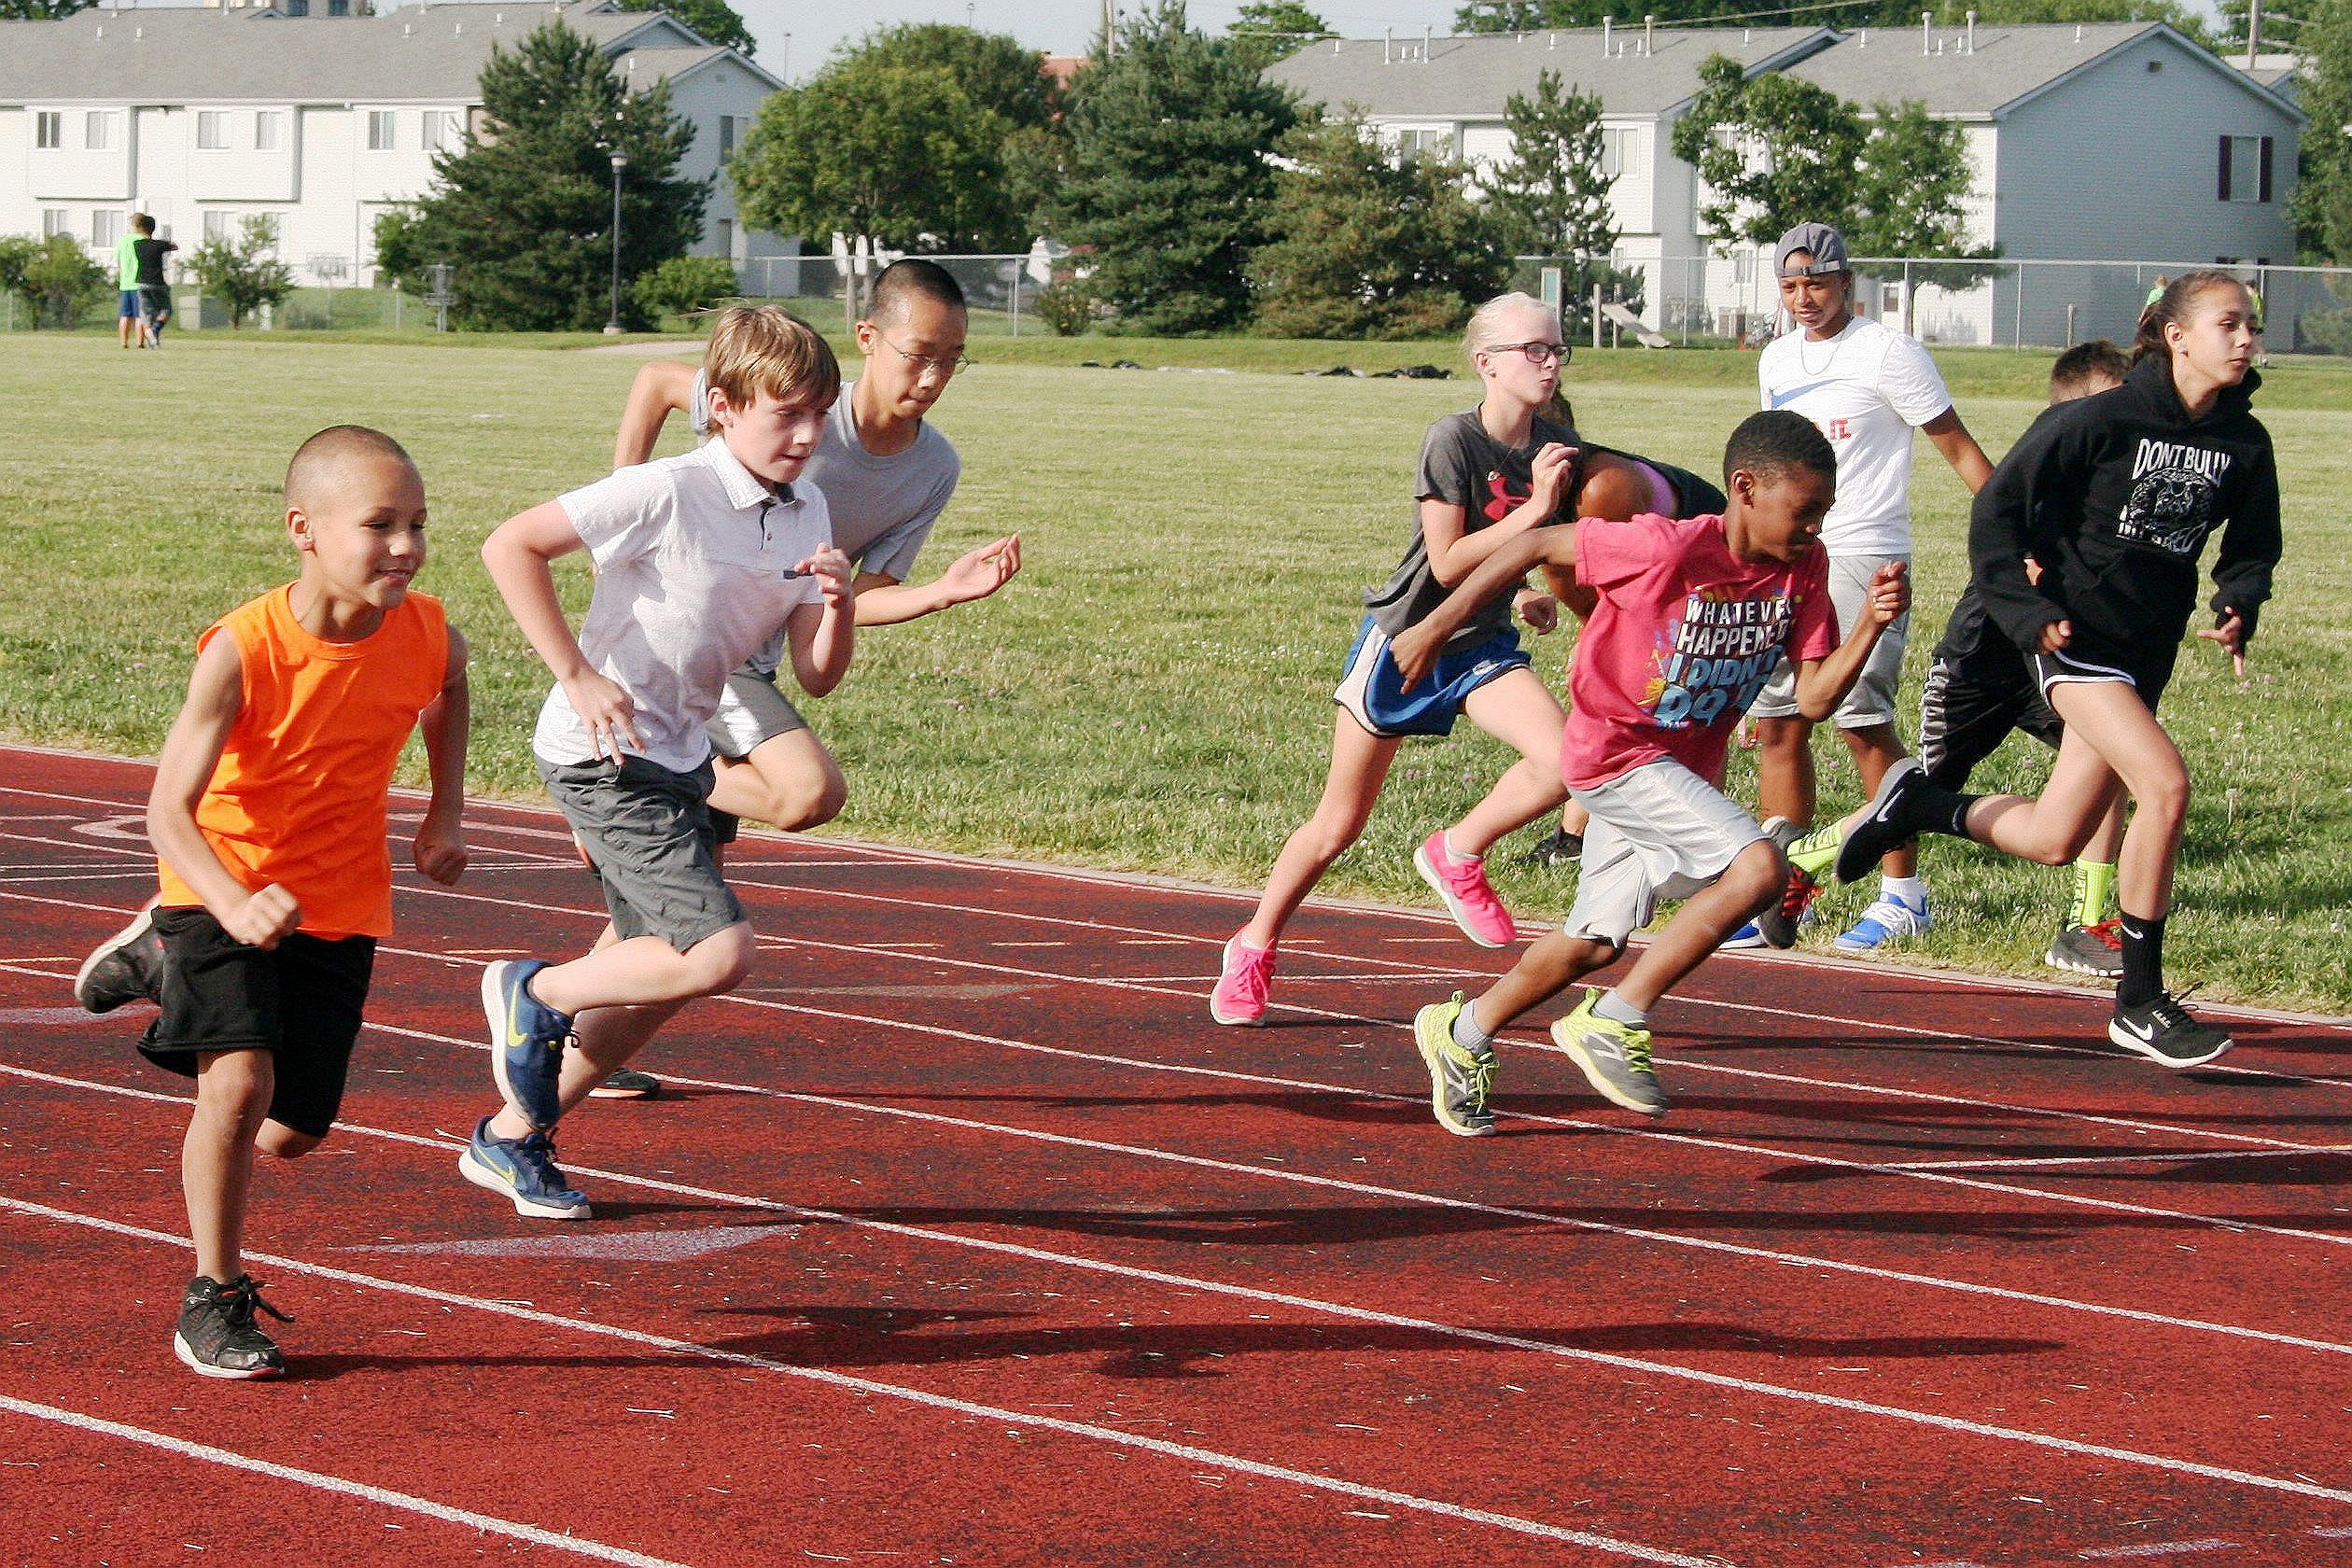 Kids participating in a race